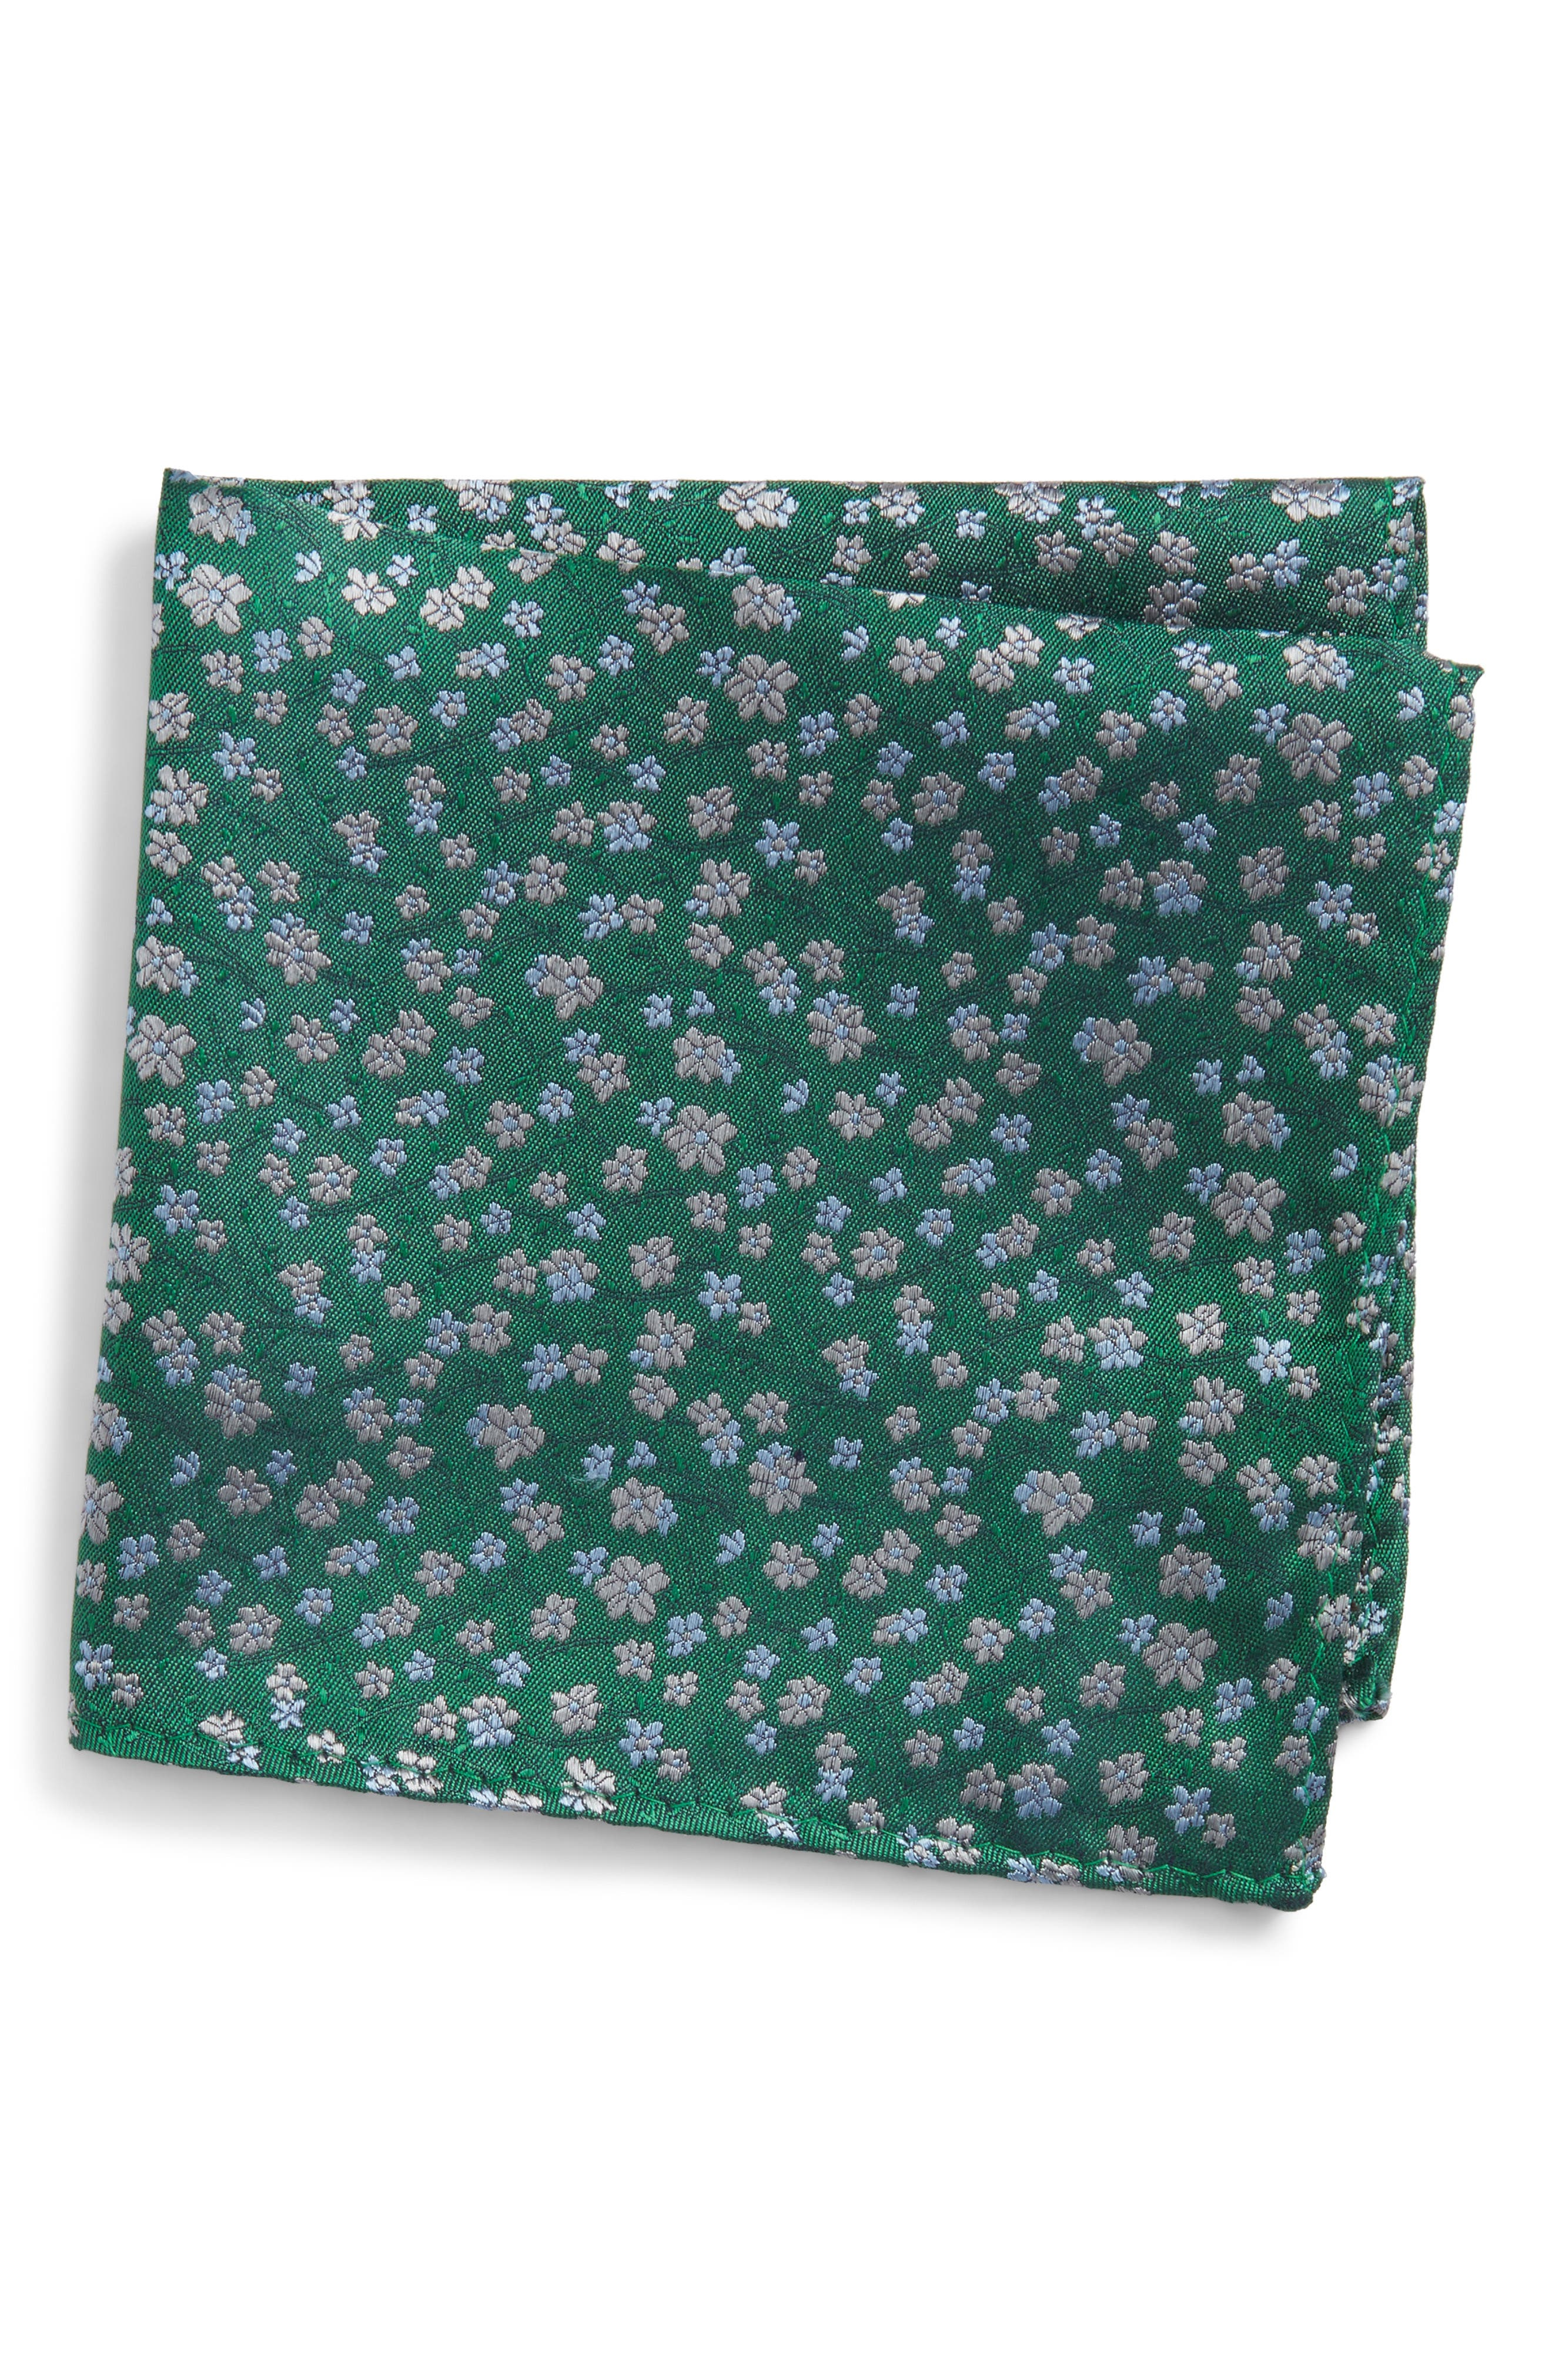 Alternate Image 1 Selected - The Tie Bar Free Fall Floral Silk Pocket Square